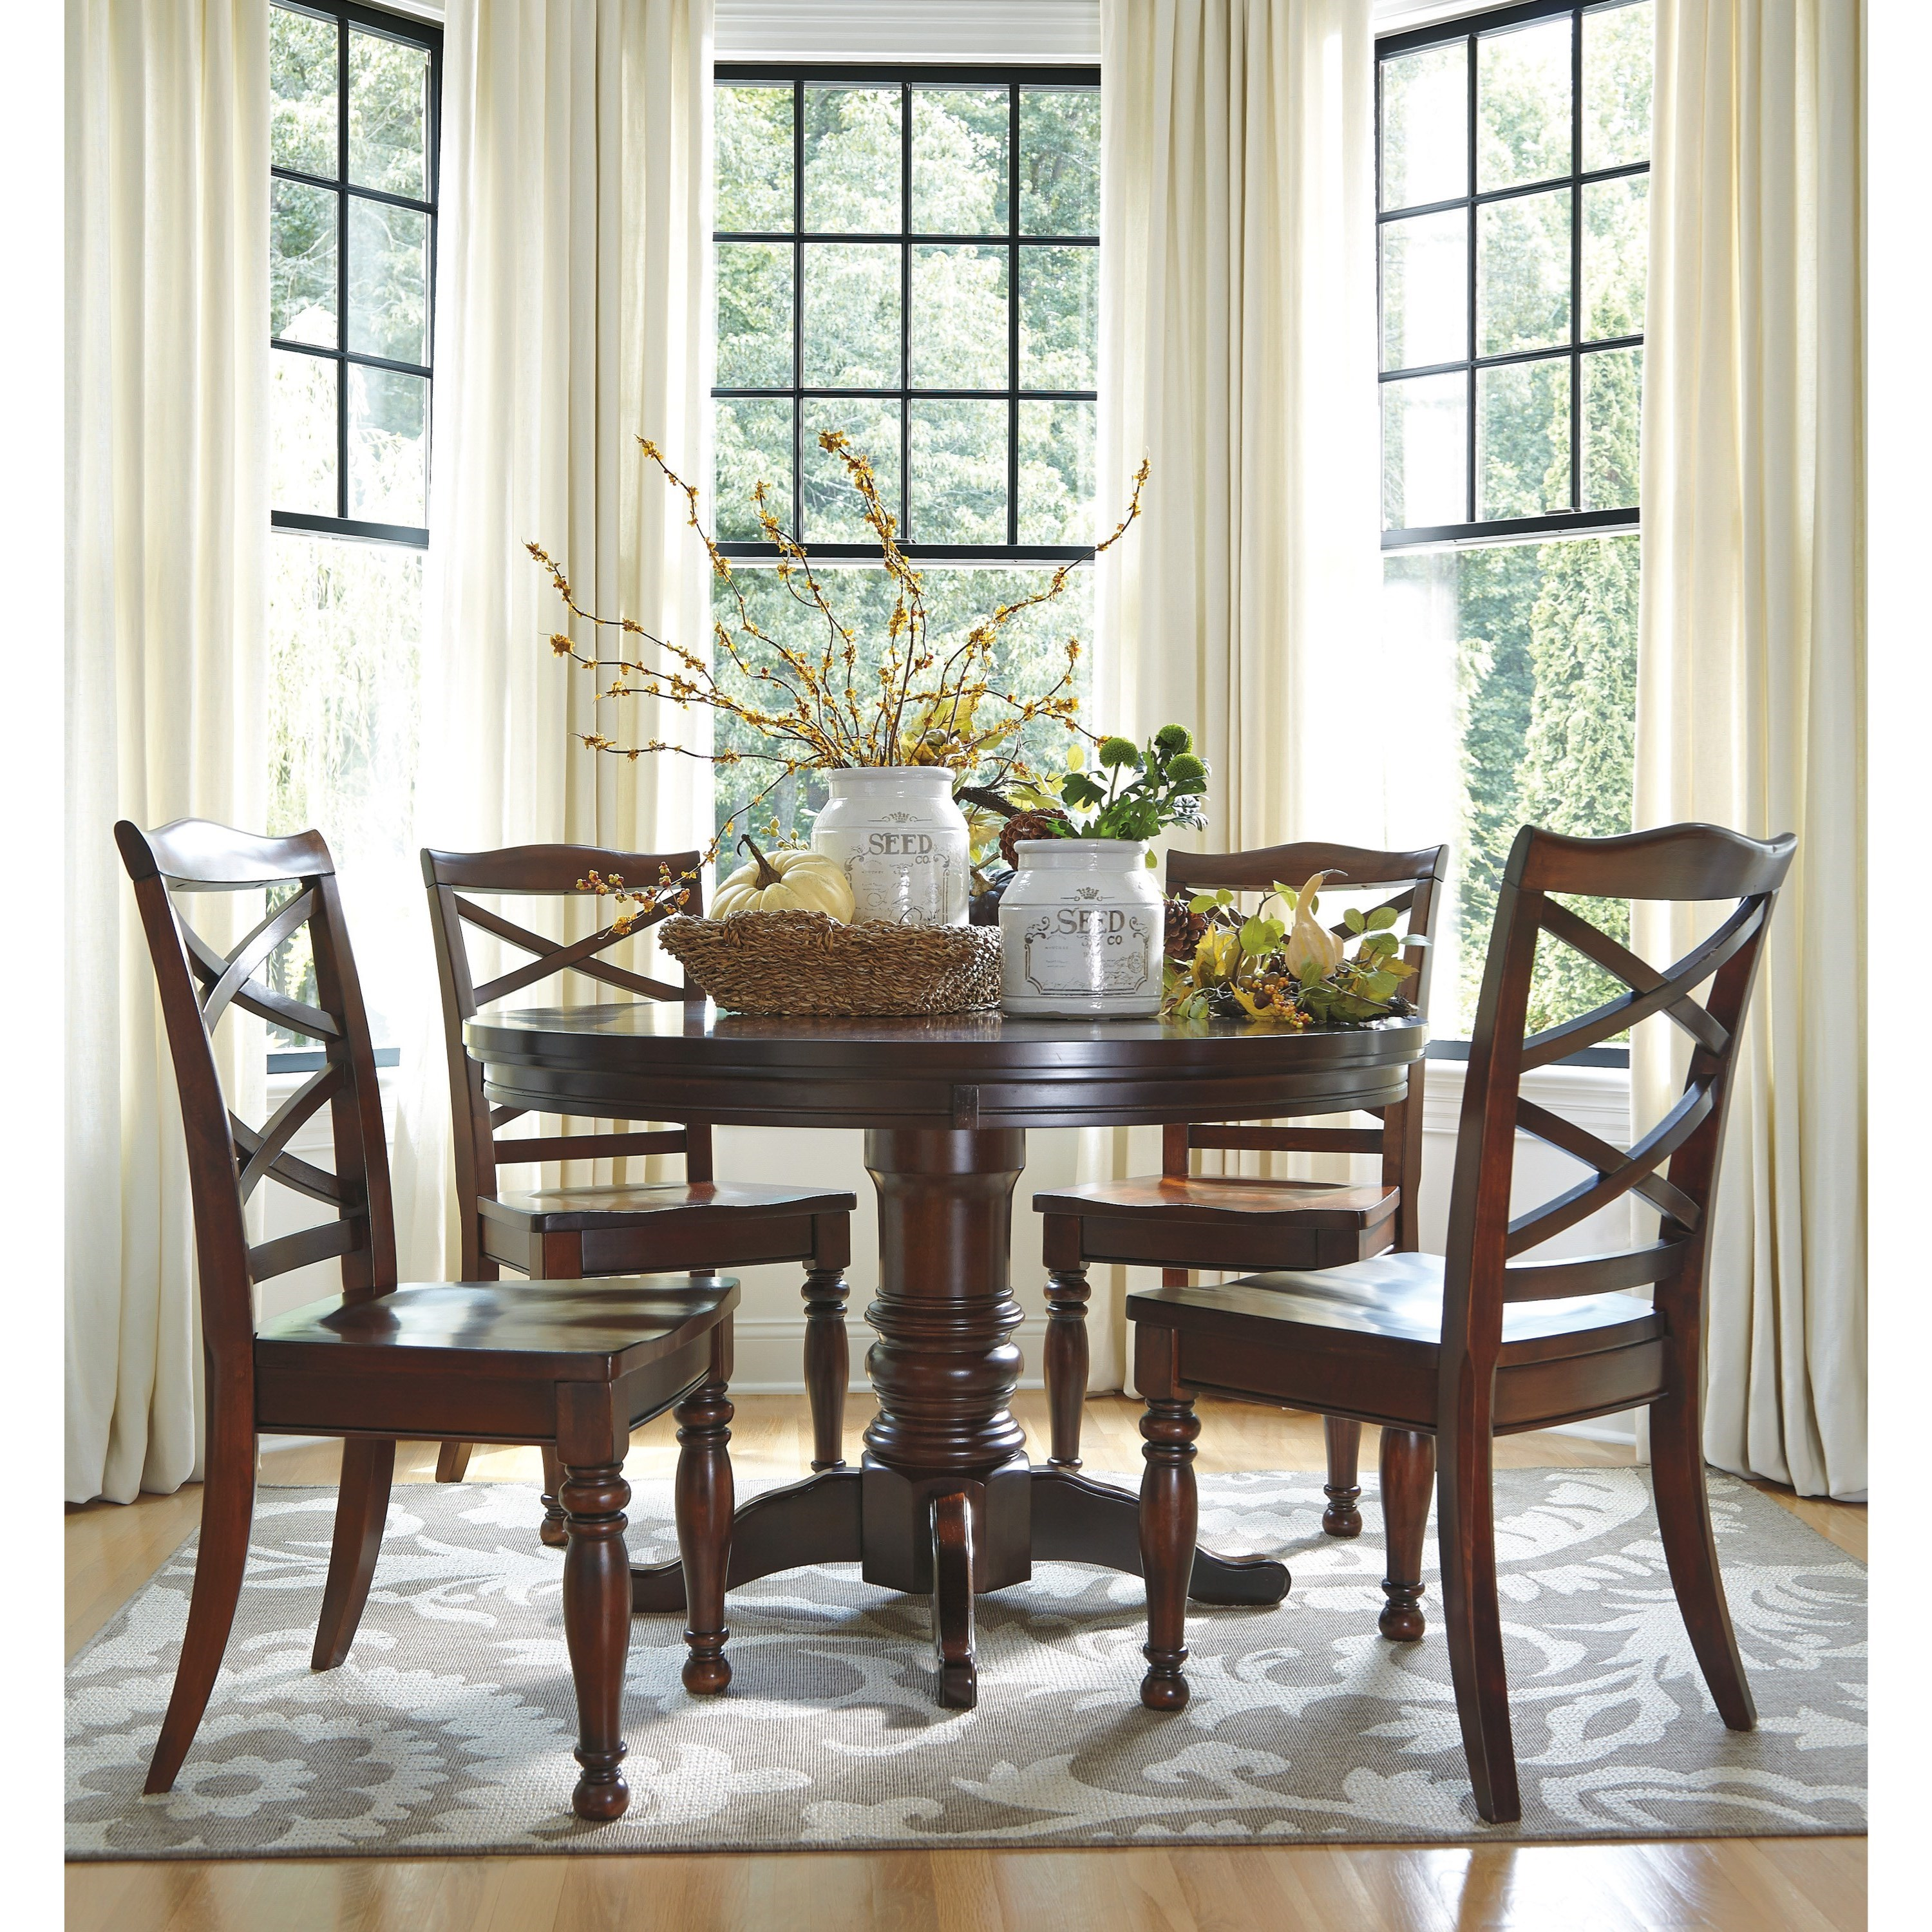 Ashley Dining Table Chairs: Ashley Furniture Porter Round Dining Room Pedestal Table